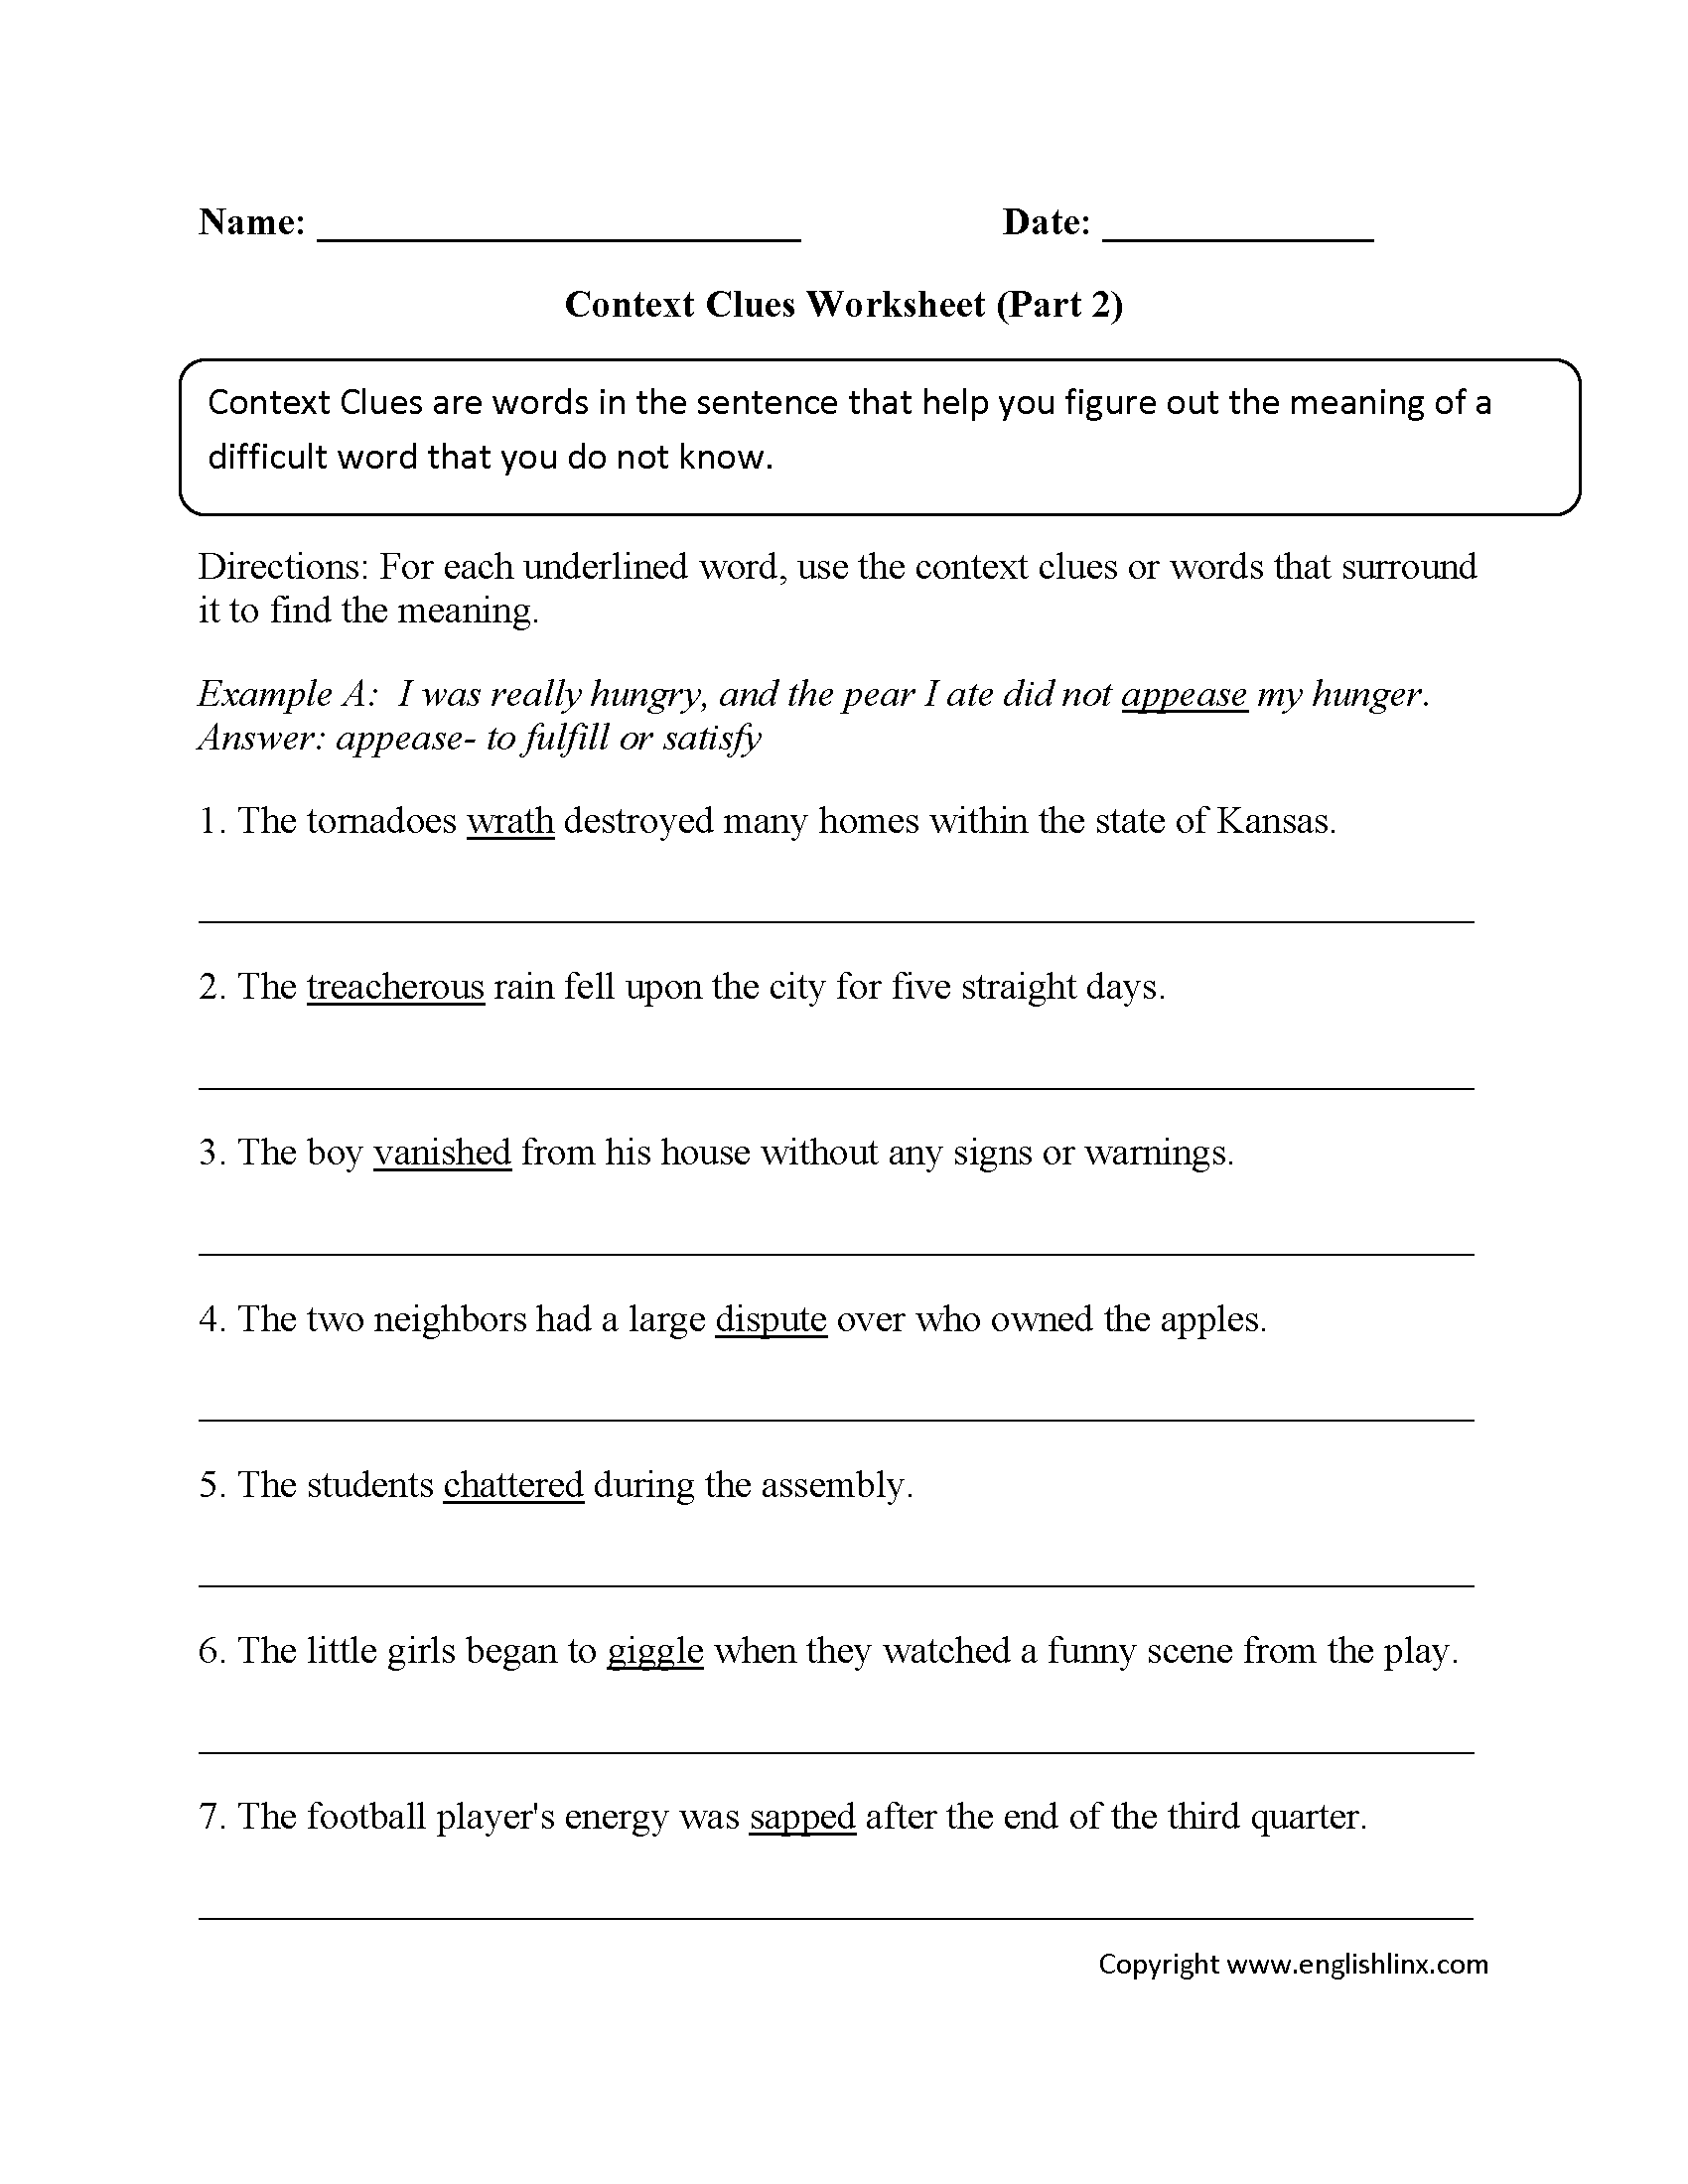 Worksheets Context Clues Worksheet context clues worksheet writing part 2 intermediate devin intermediate